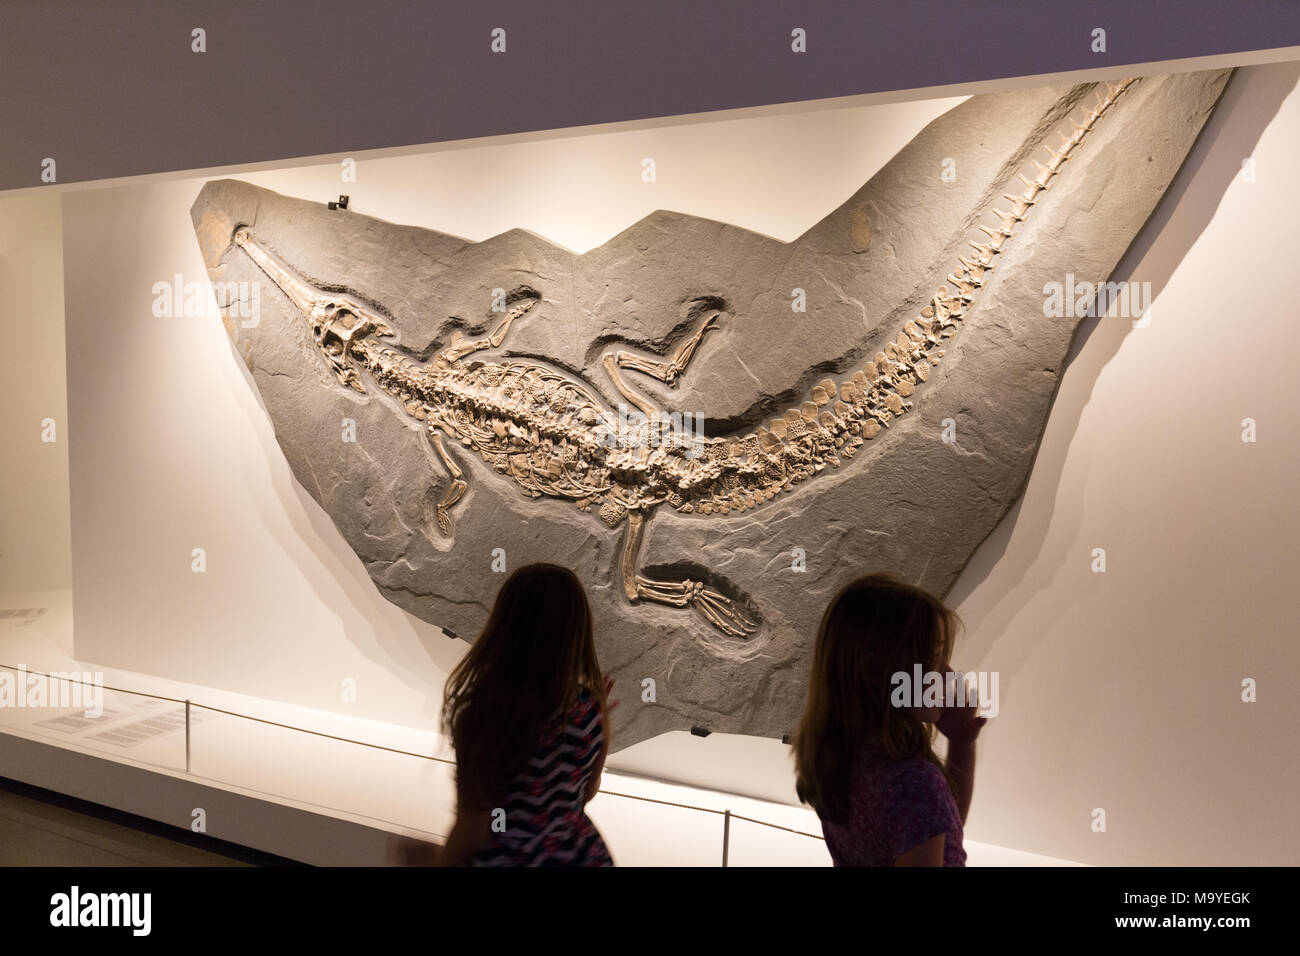 Children looking at a dinosaur fossil, Houston Museum of Natural Science, Houston, Texas USA - Stock Image